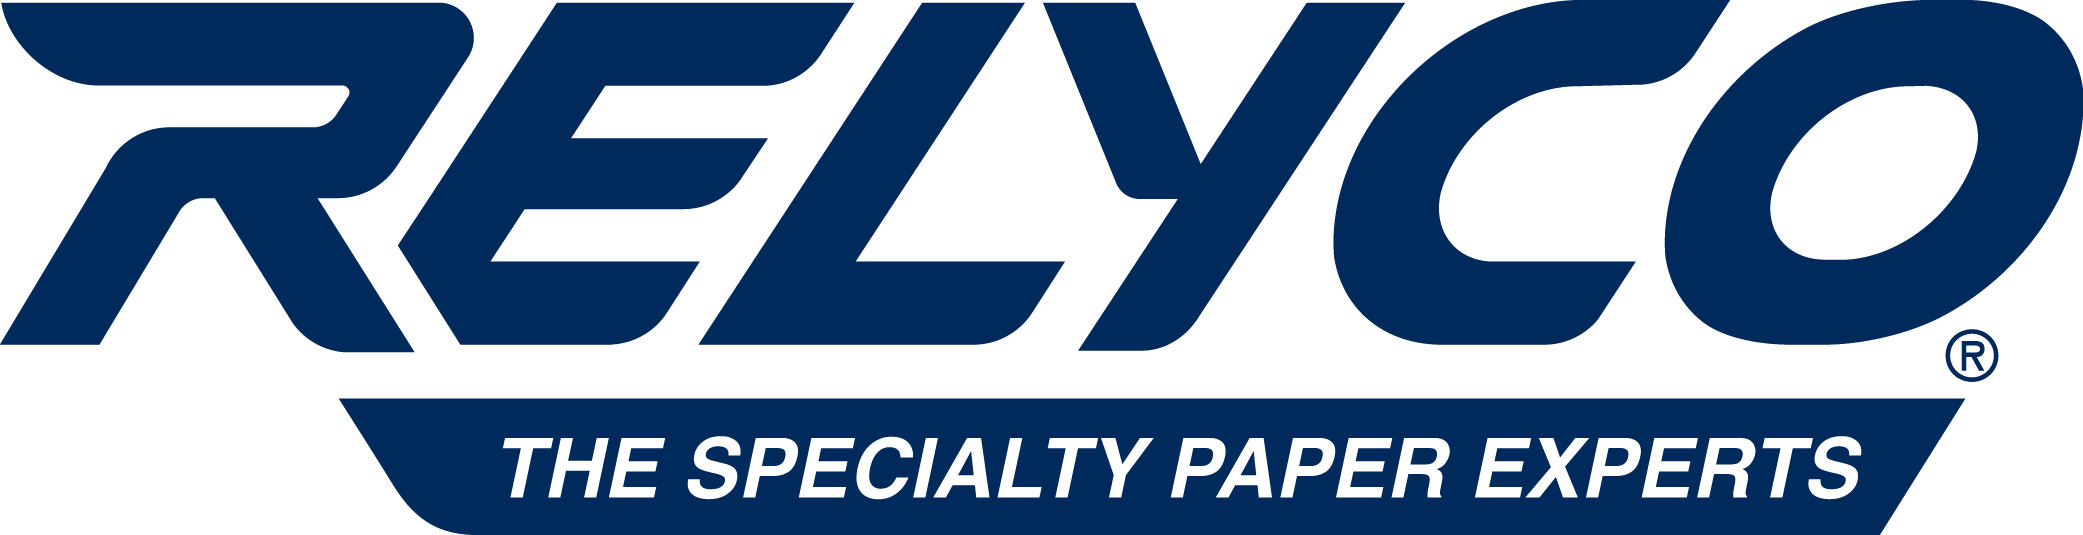 Thank you  Relyco  for your Gold Level Sponsorship! RelyCo is a global provider of business printing and payment solutions.